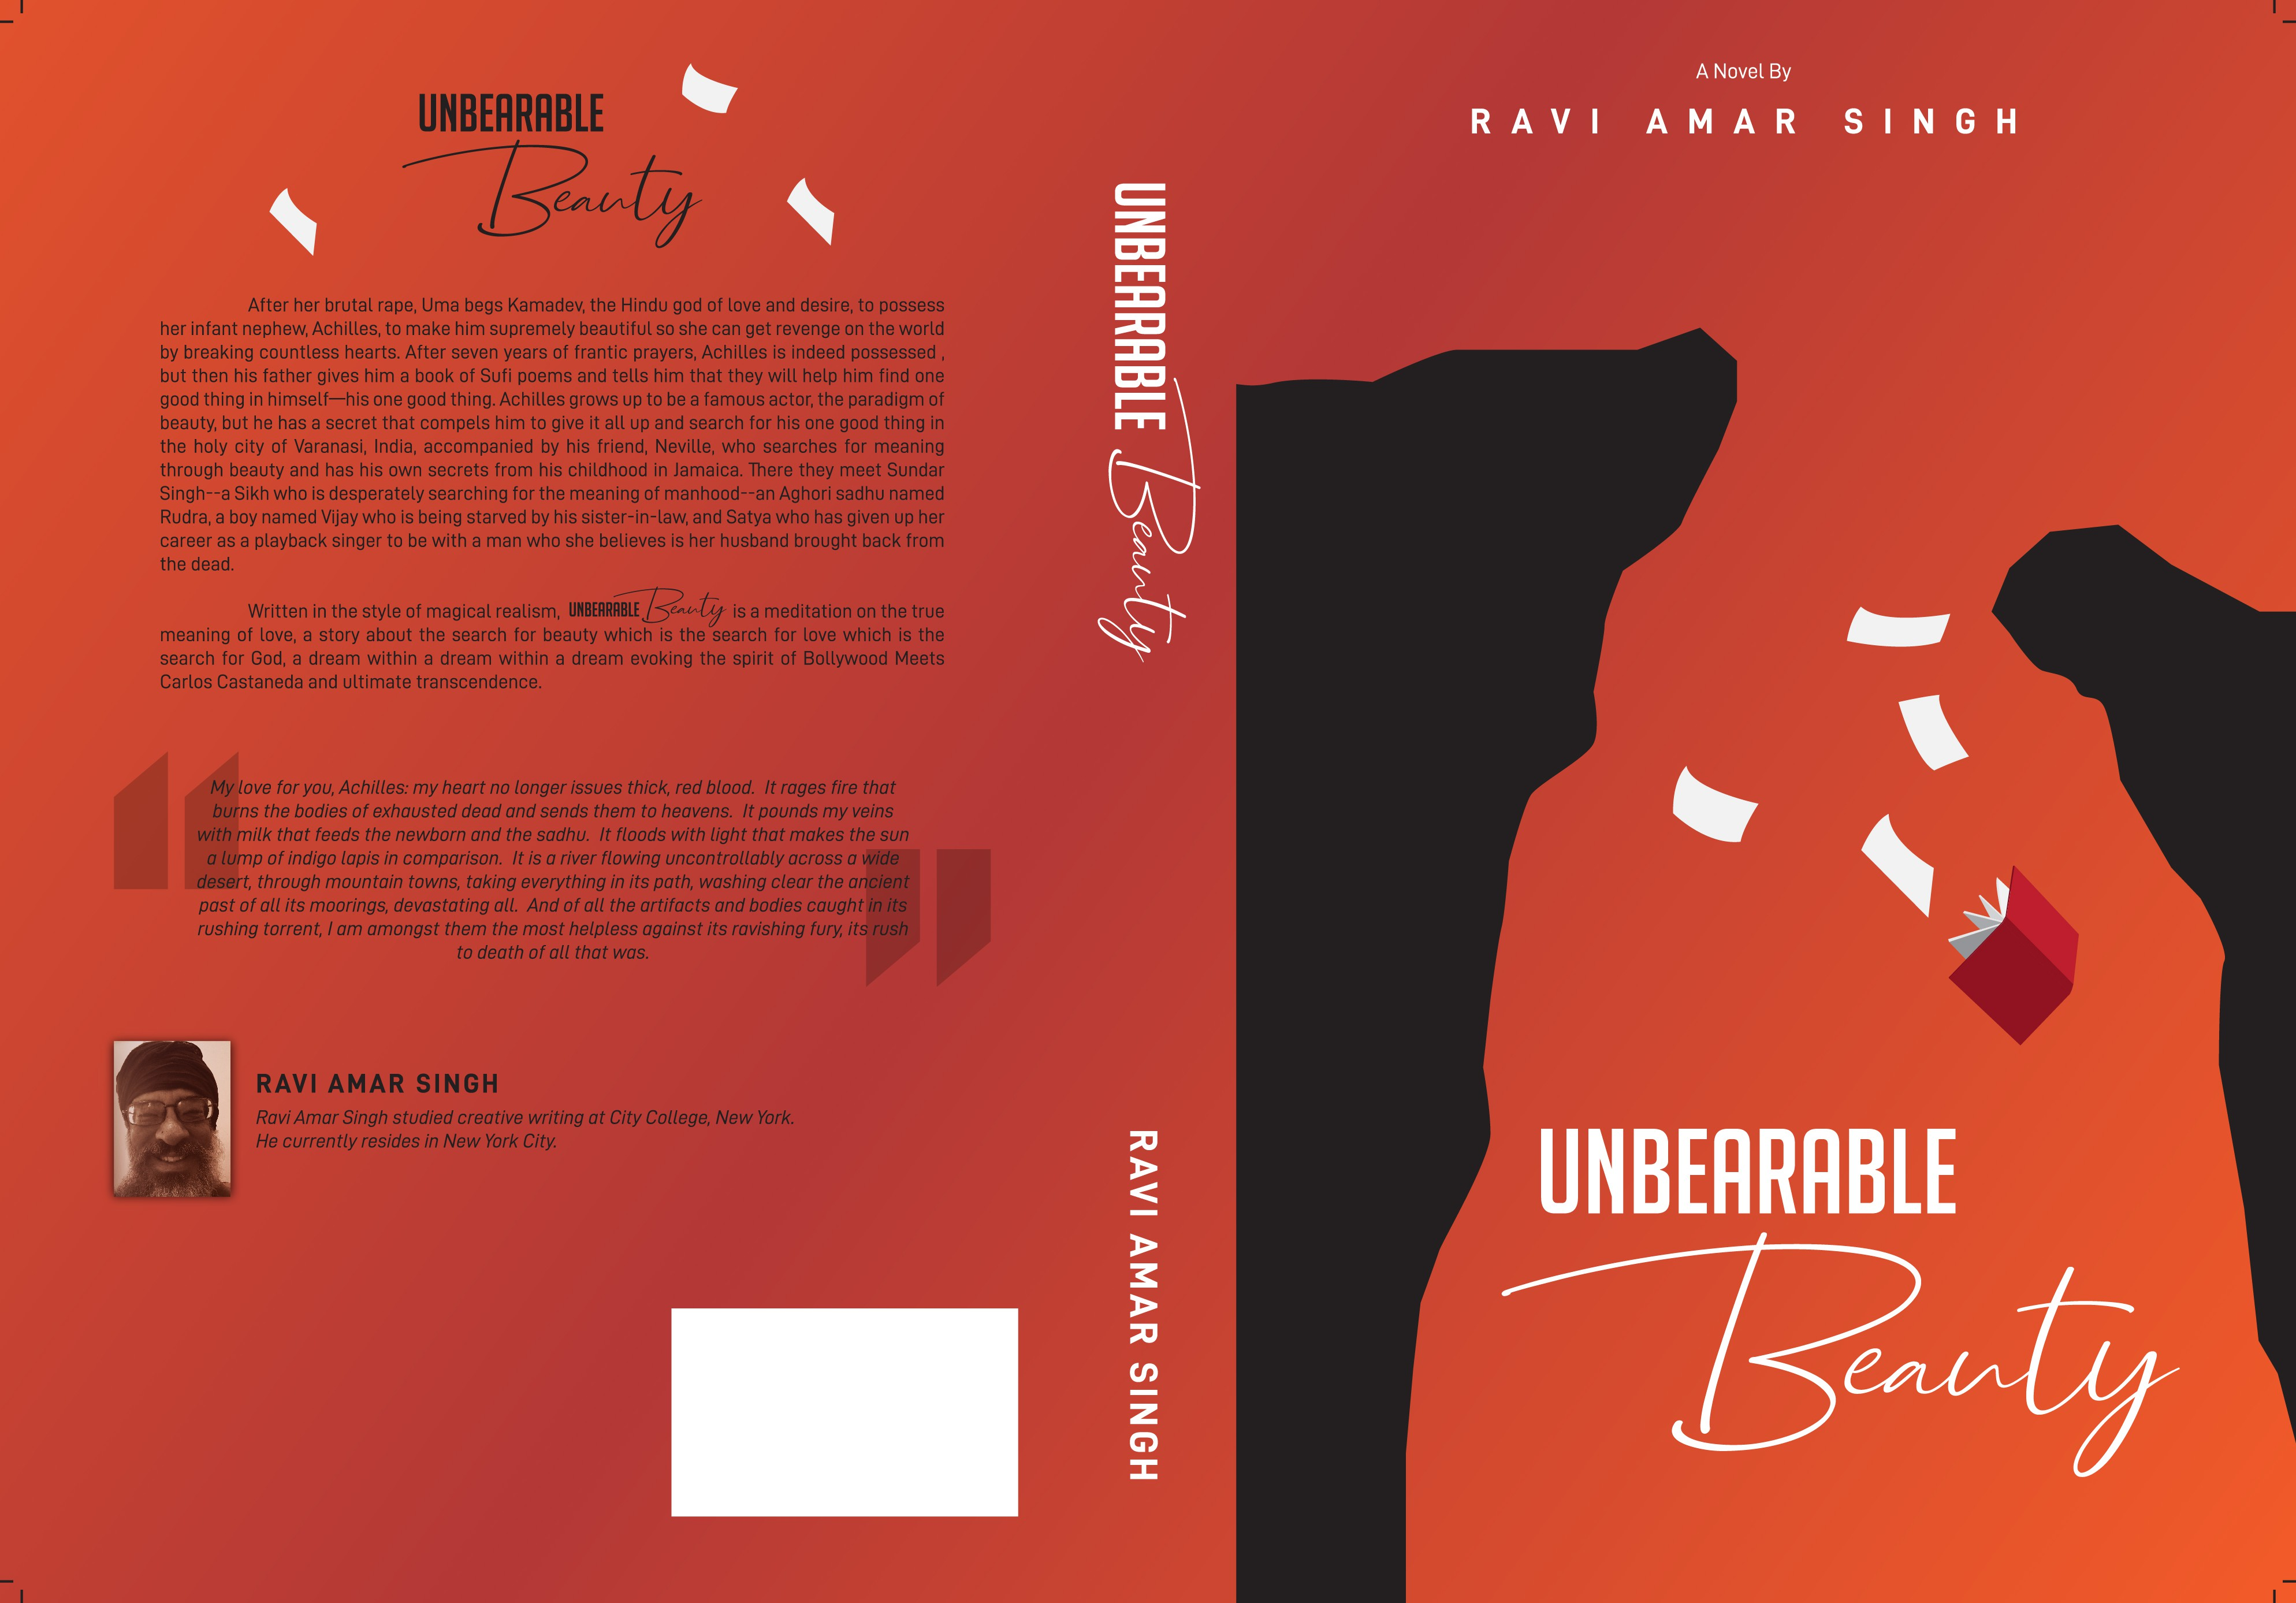 Design a cover for Unbearable Beauty, a novel about transcendence